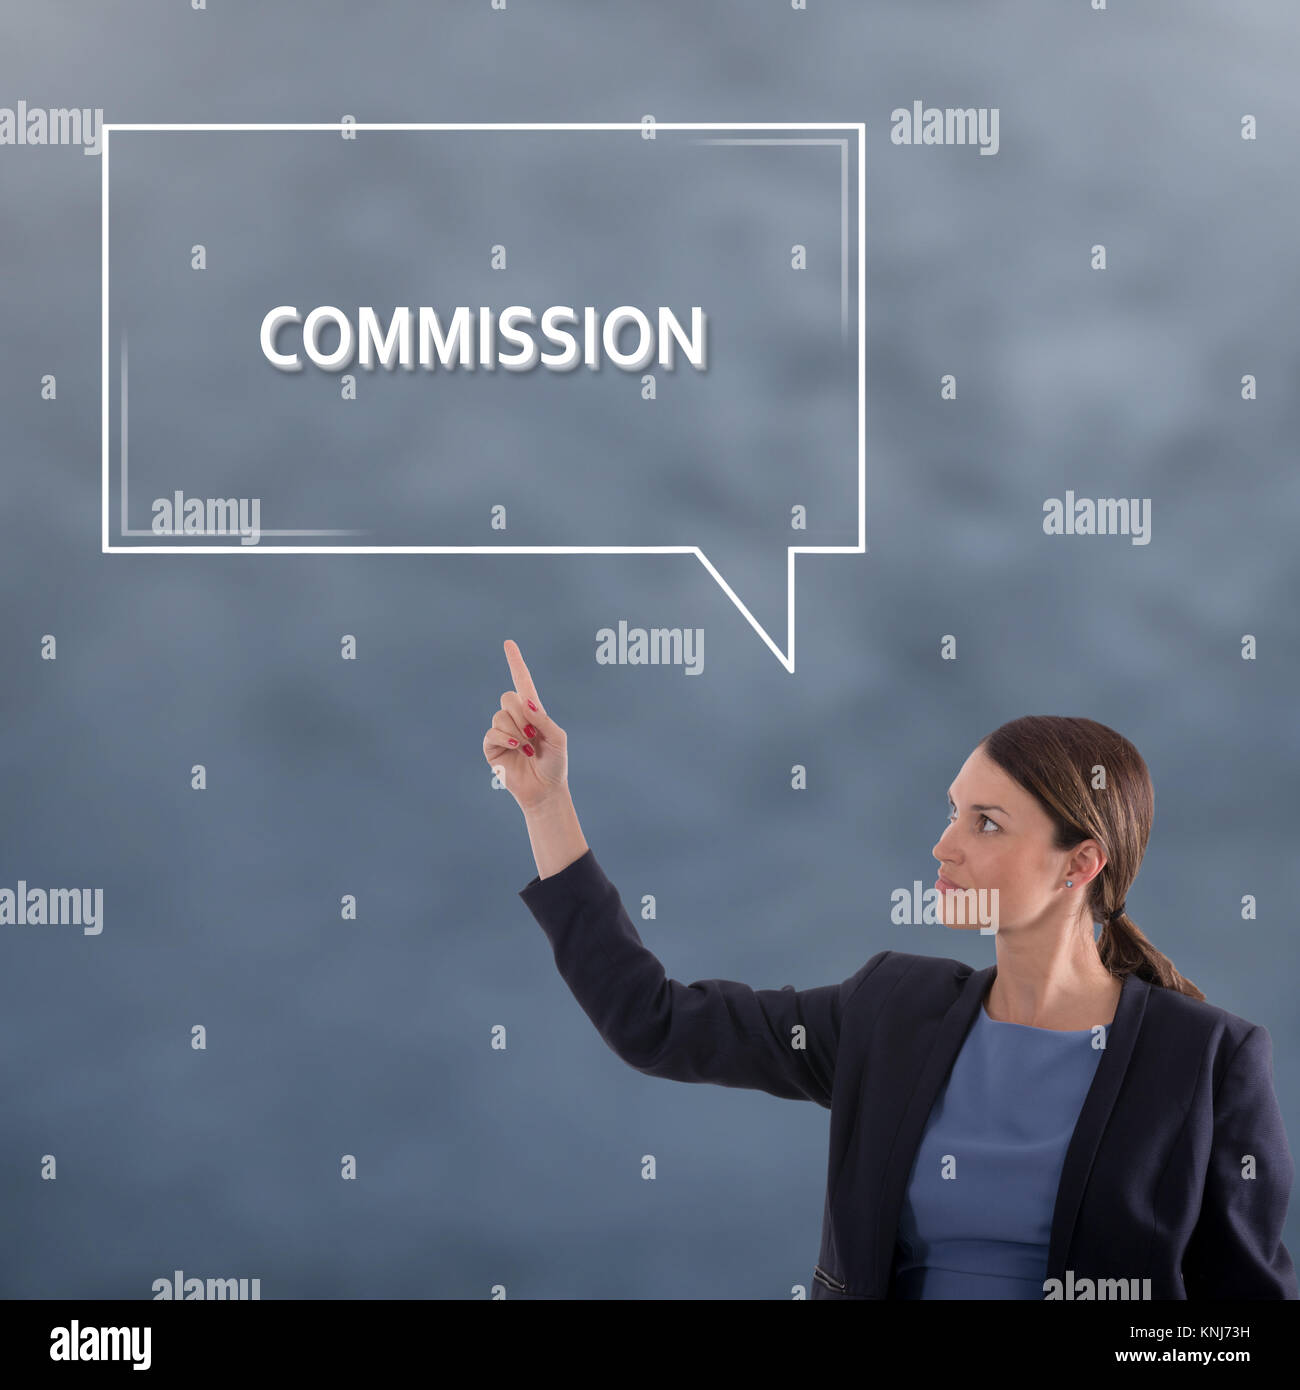 COMMISSION Business Concept. Business Woman Graphic Concept - Stock Image